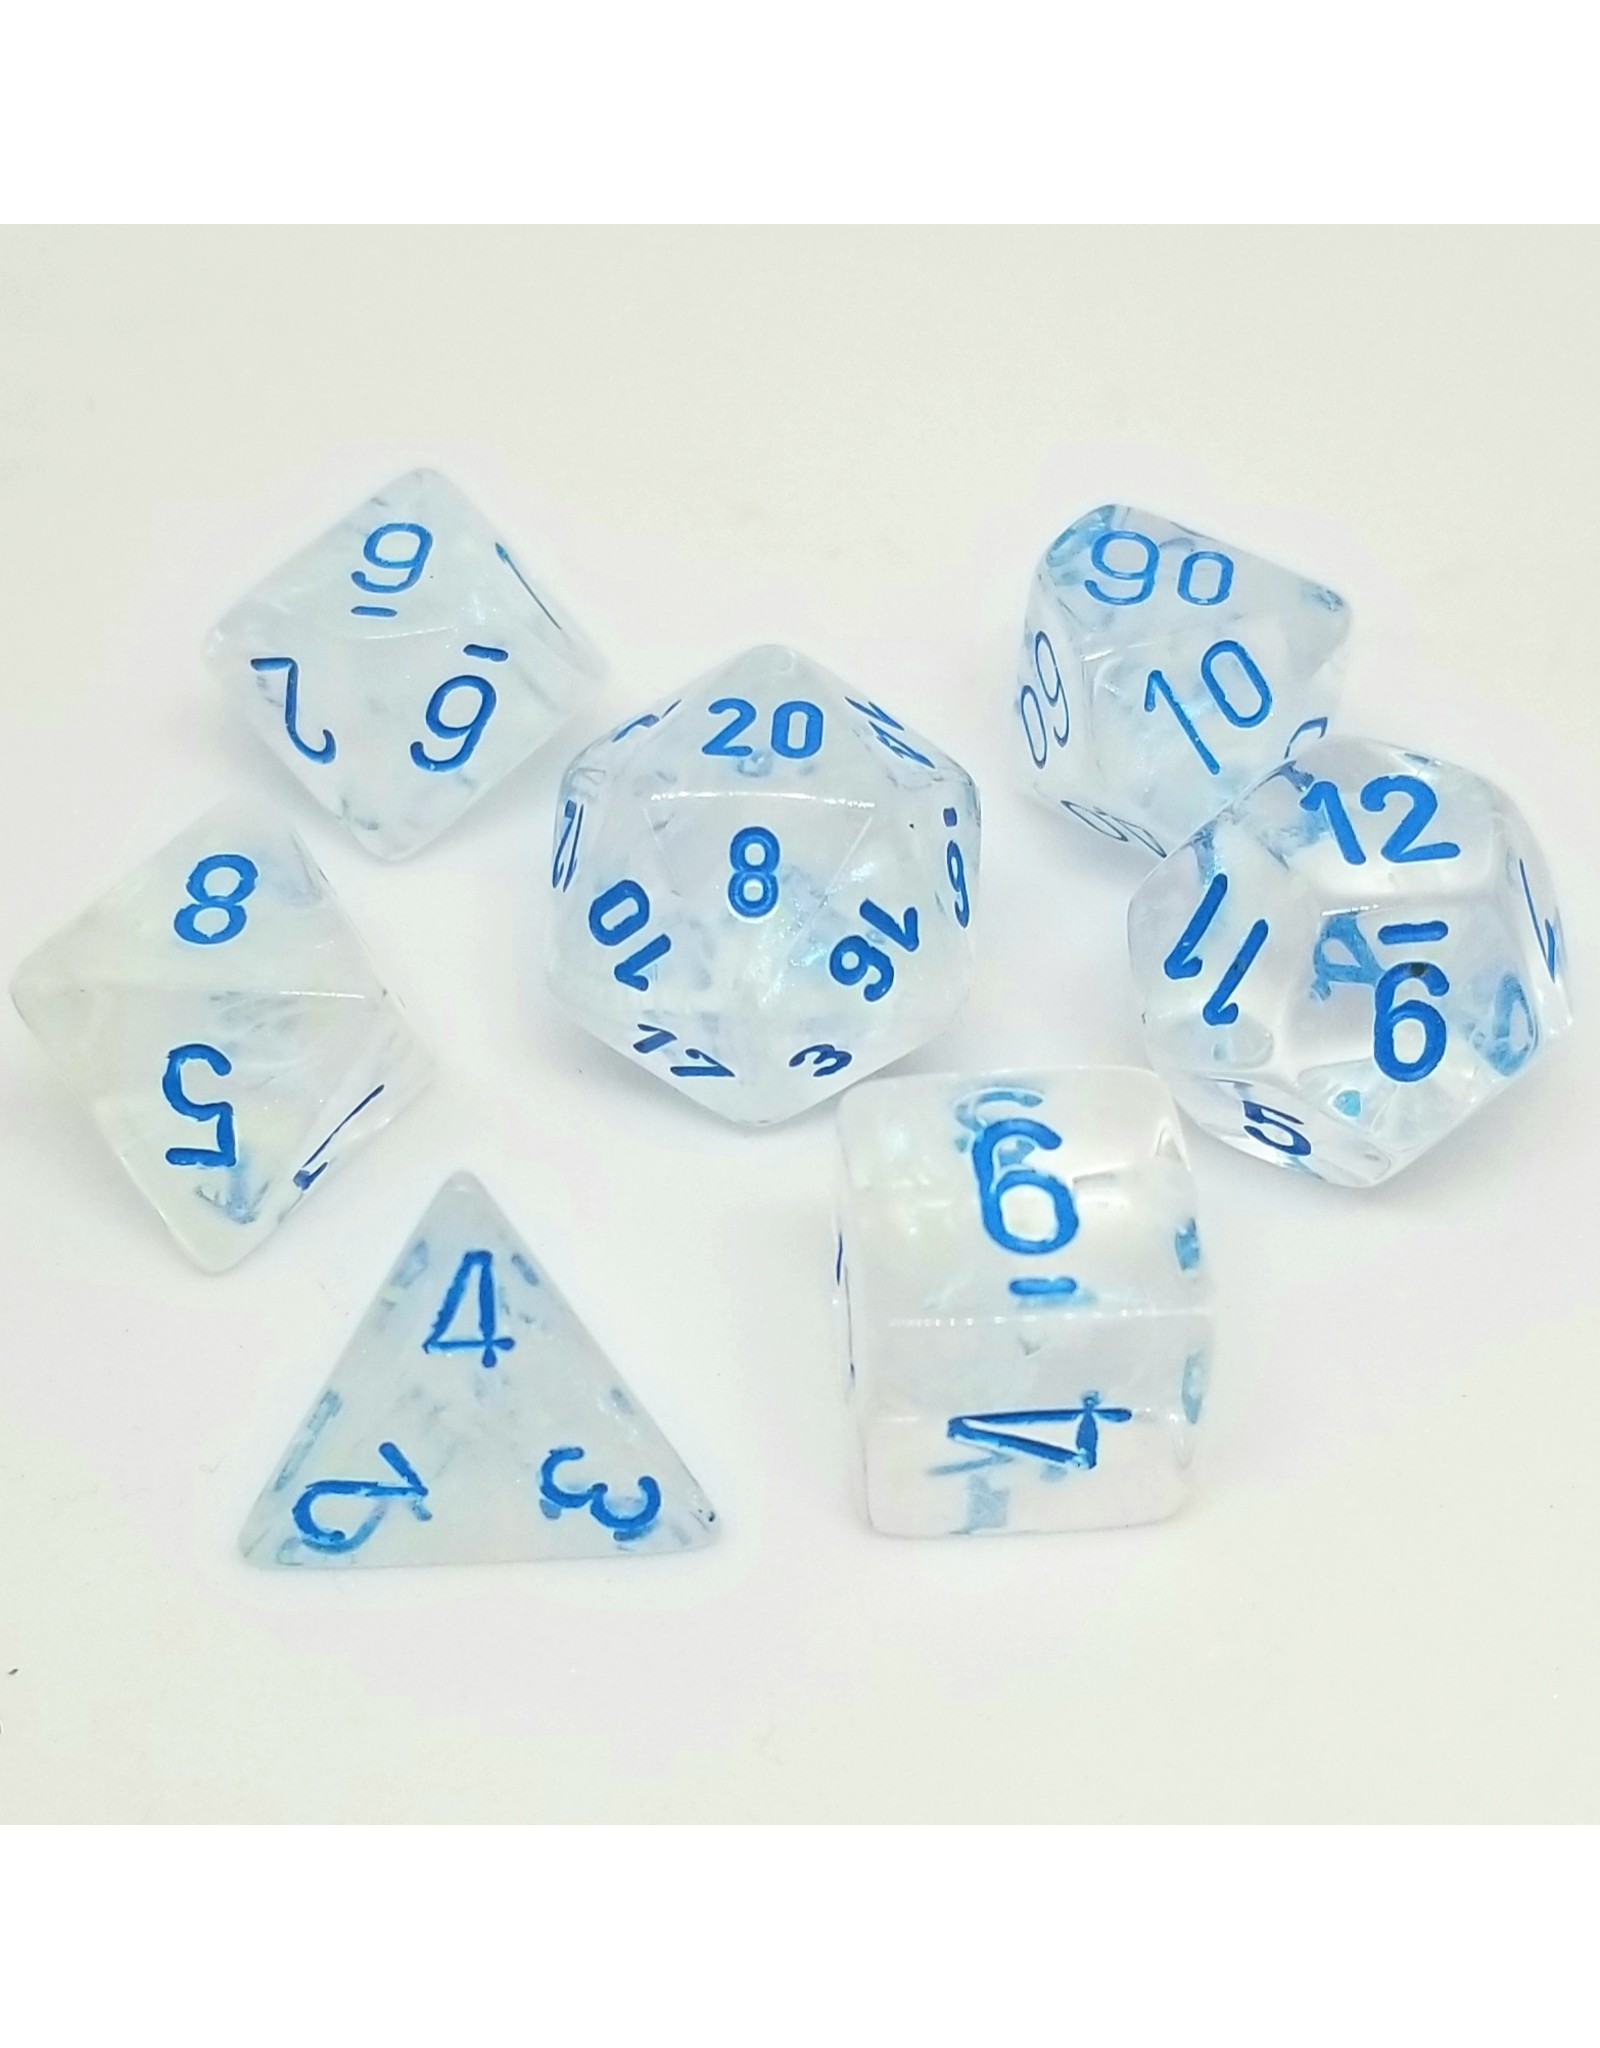 CHESSEX CHX 27581 7ct BOREALIS POLYHEDRAL ICICLE/LIGHT BLUE LUMINARY